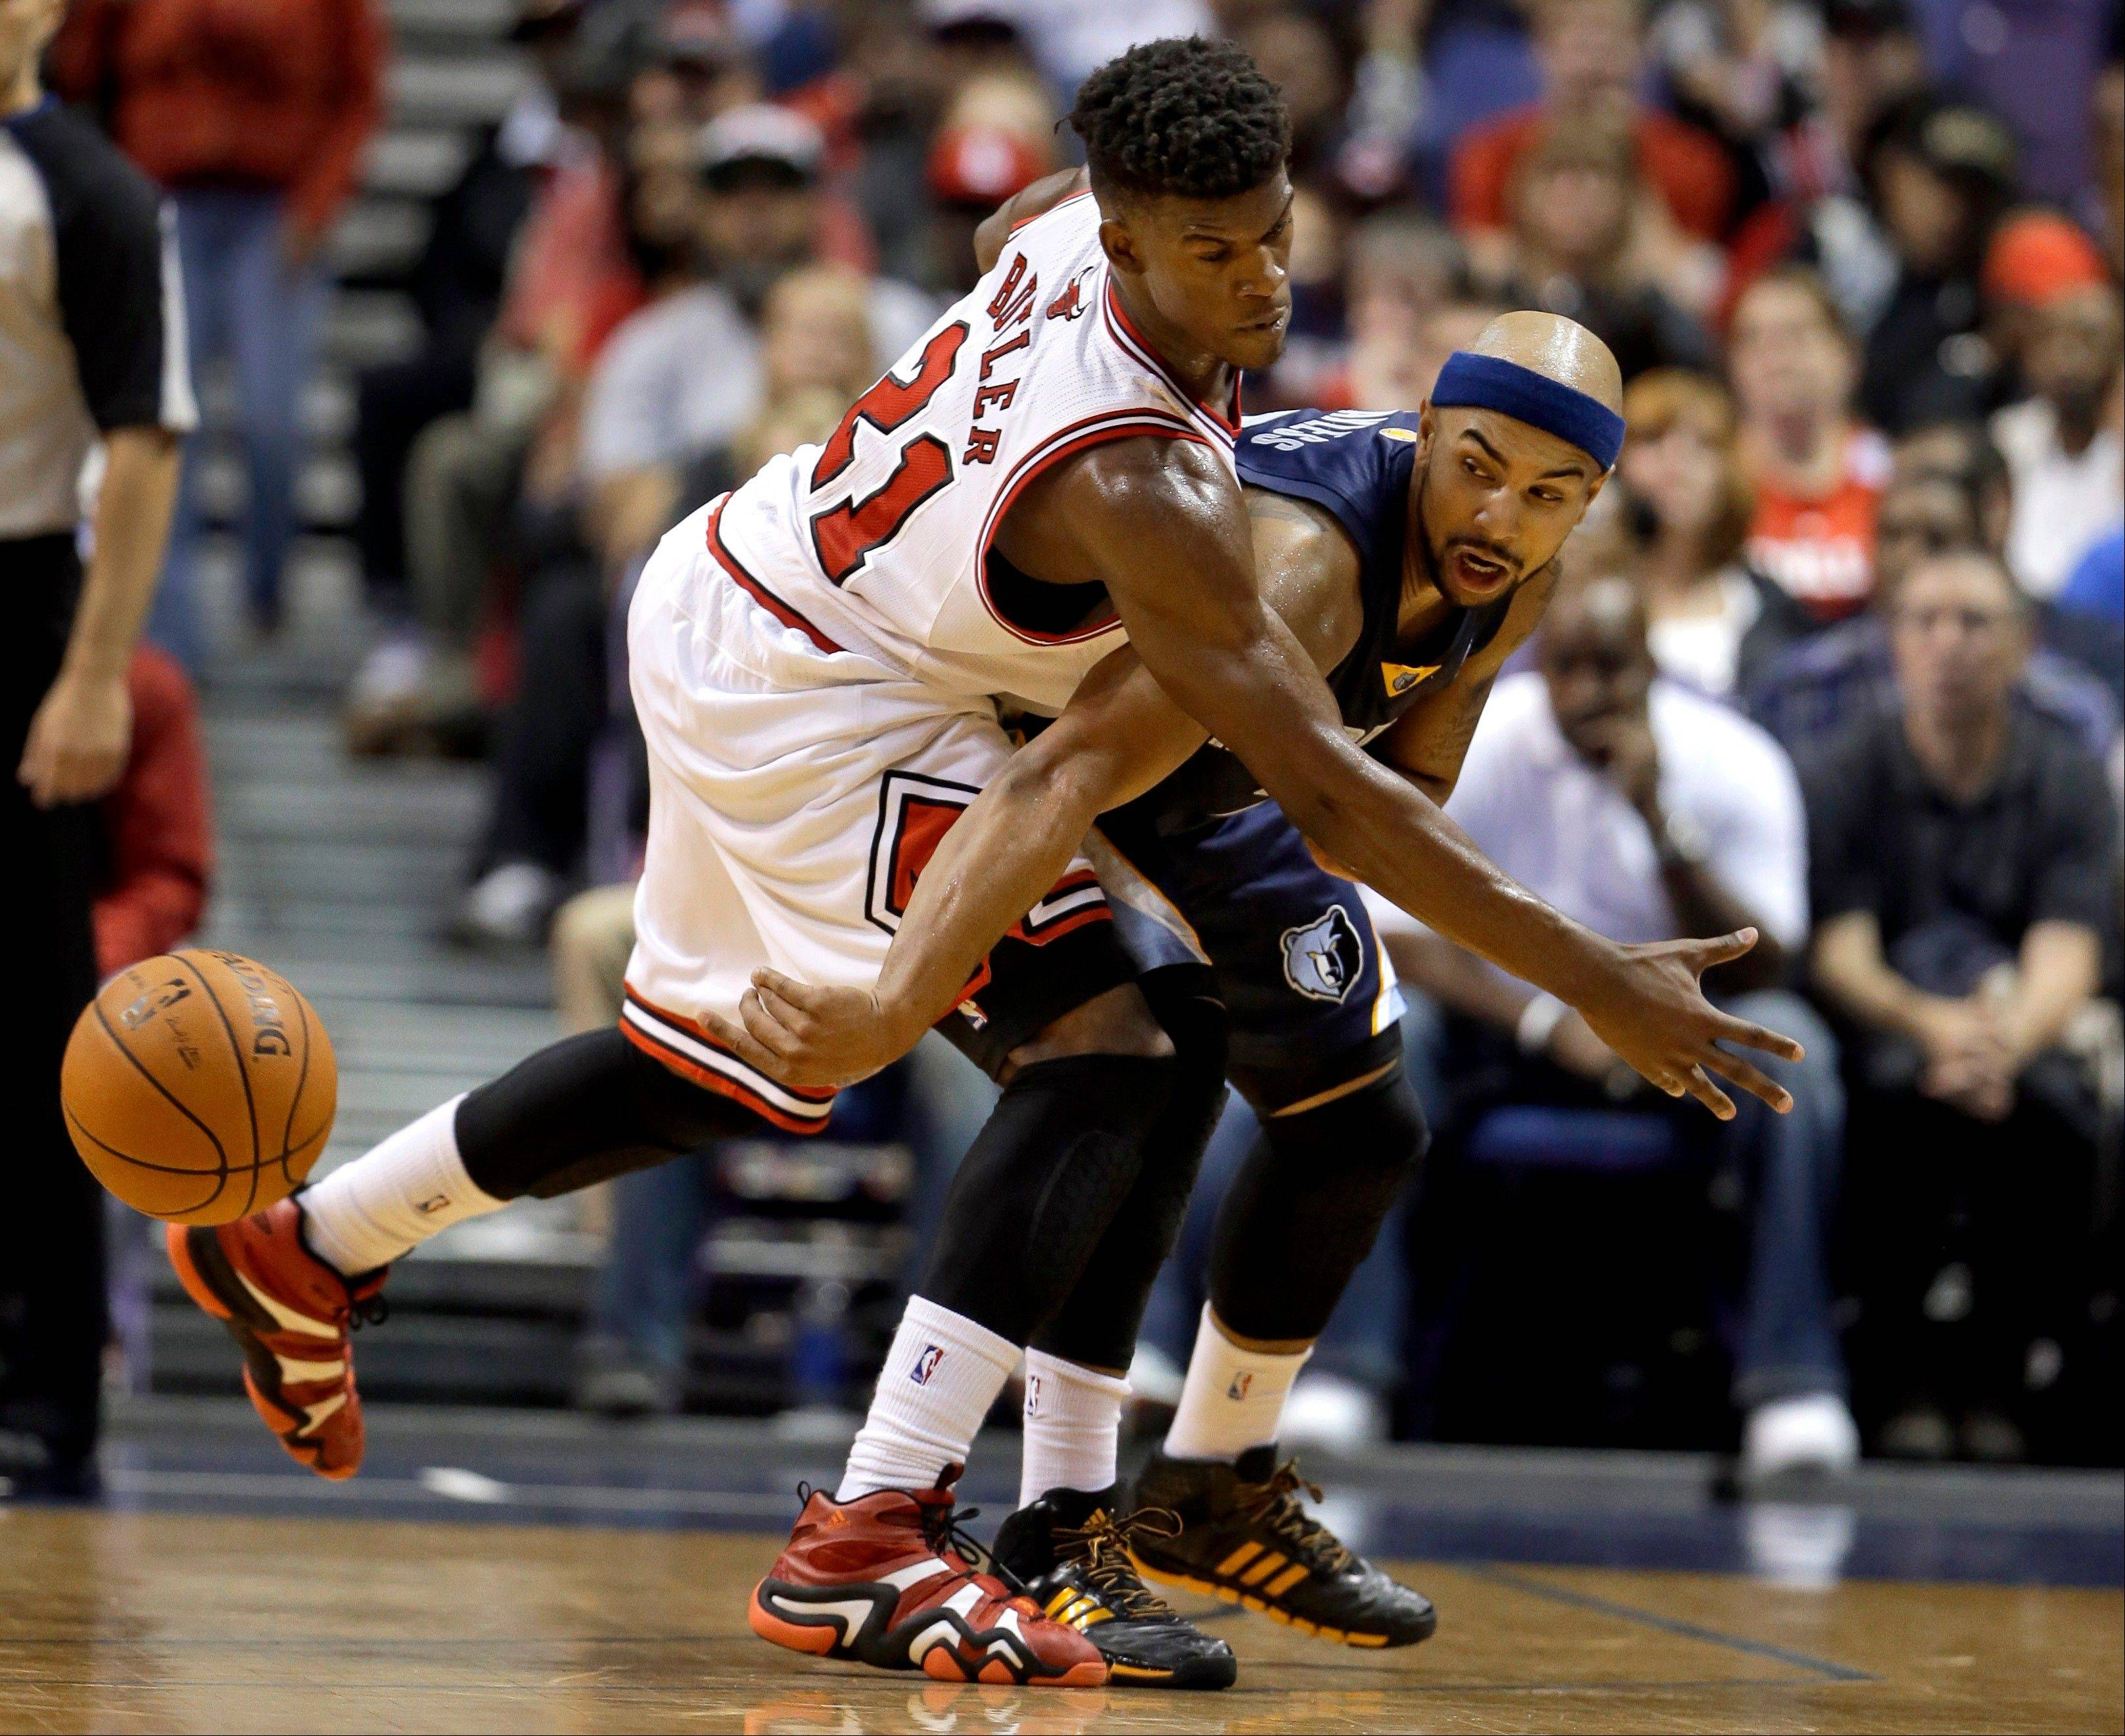 The Grizzlies' Jerryd Bayless, right, passes around the Bulls' Jimmy Butler during the second half of an NBA preseason basketball game Monday in St. Louis. The Bulls won 106-87.